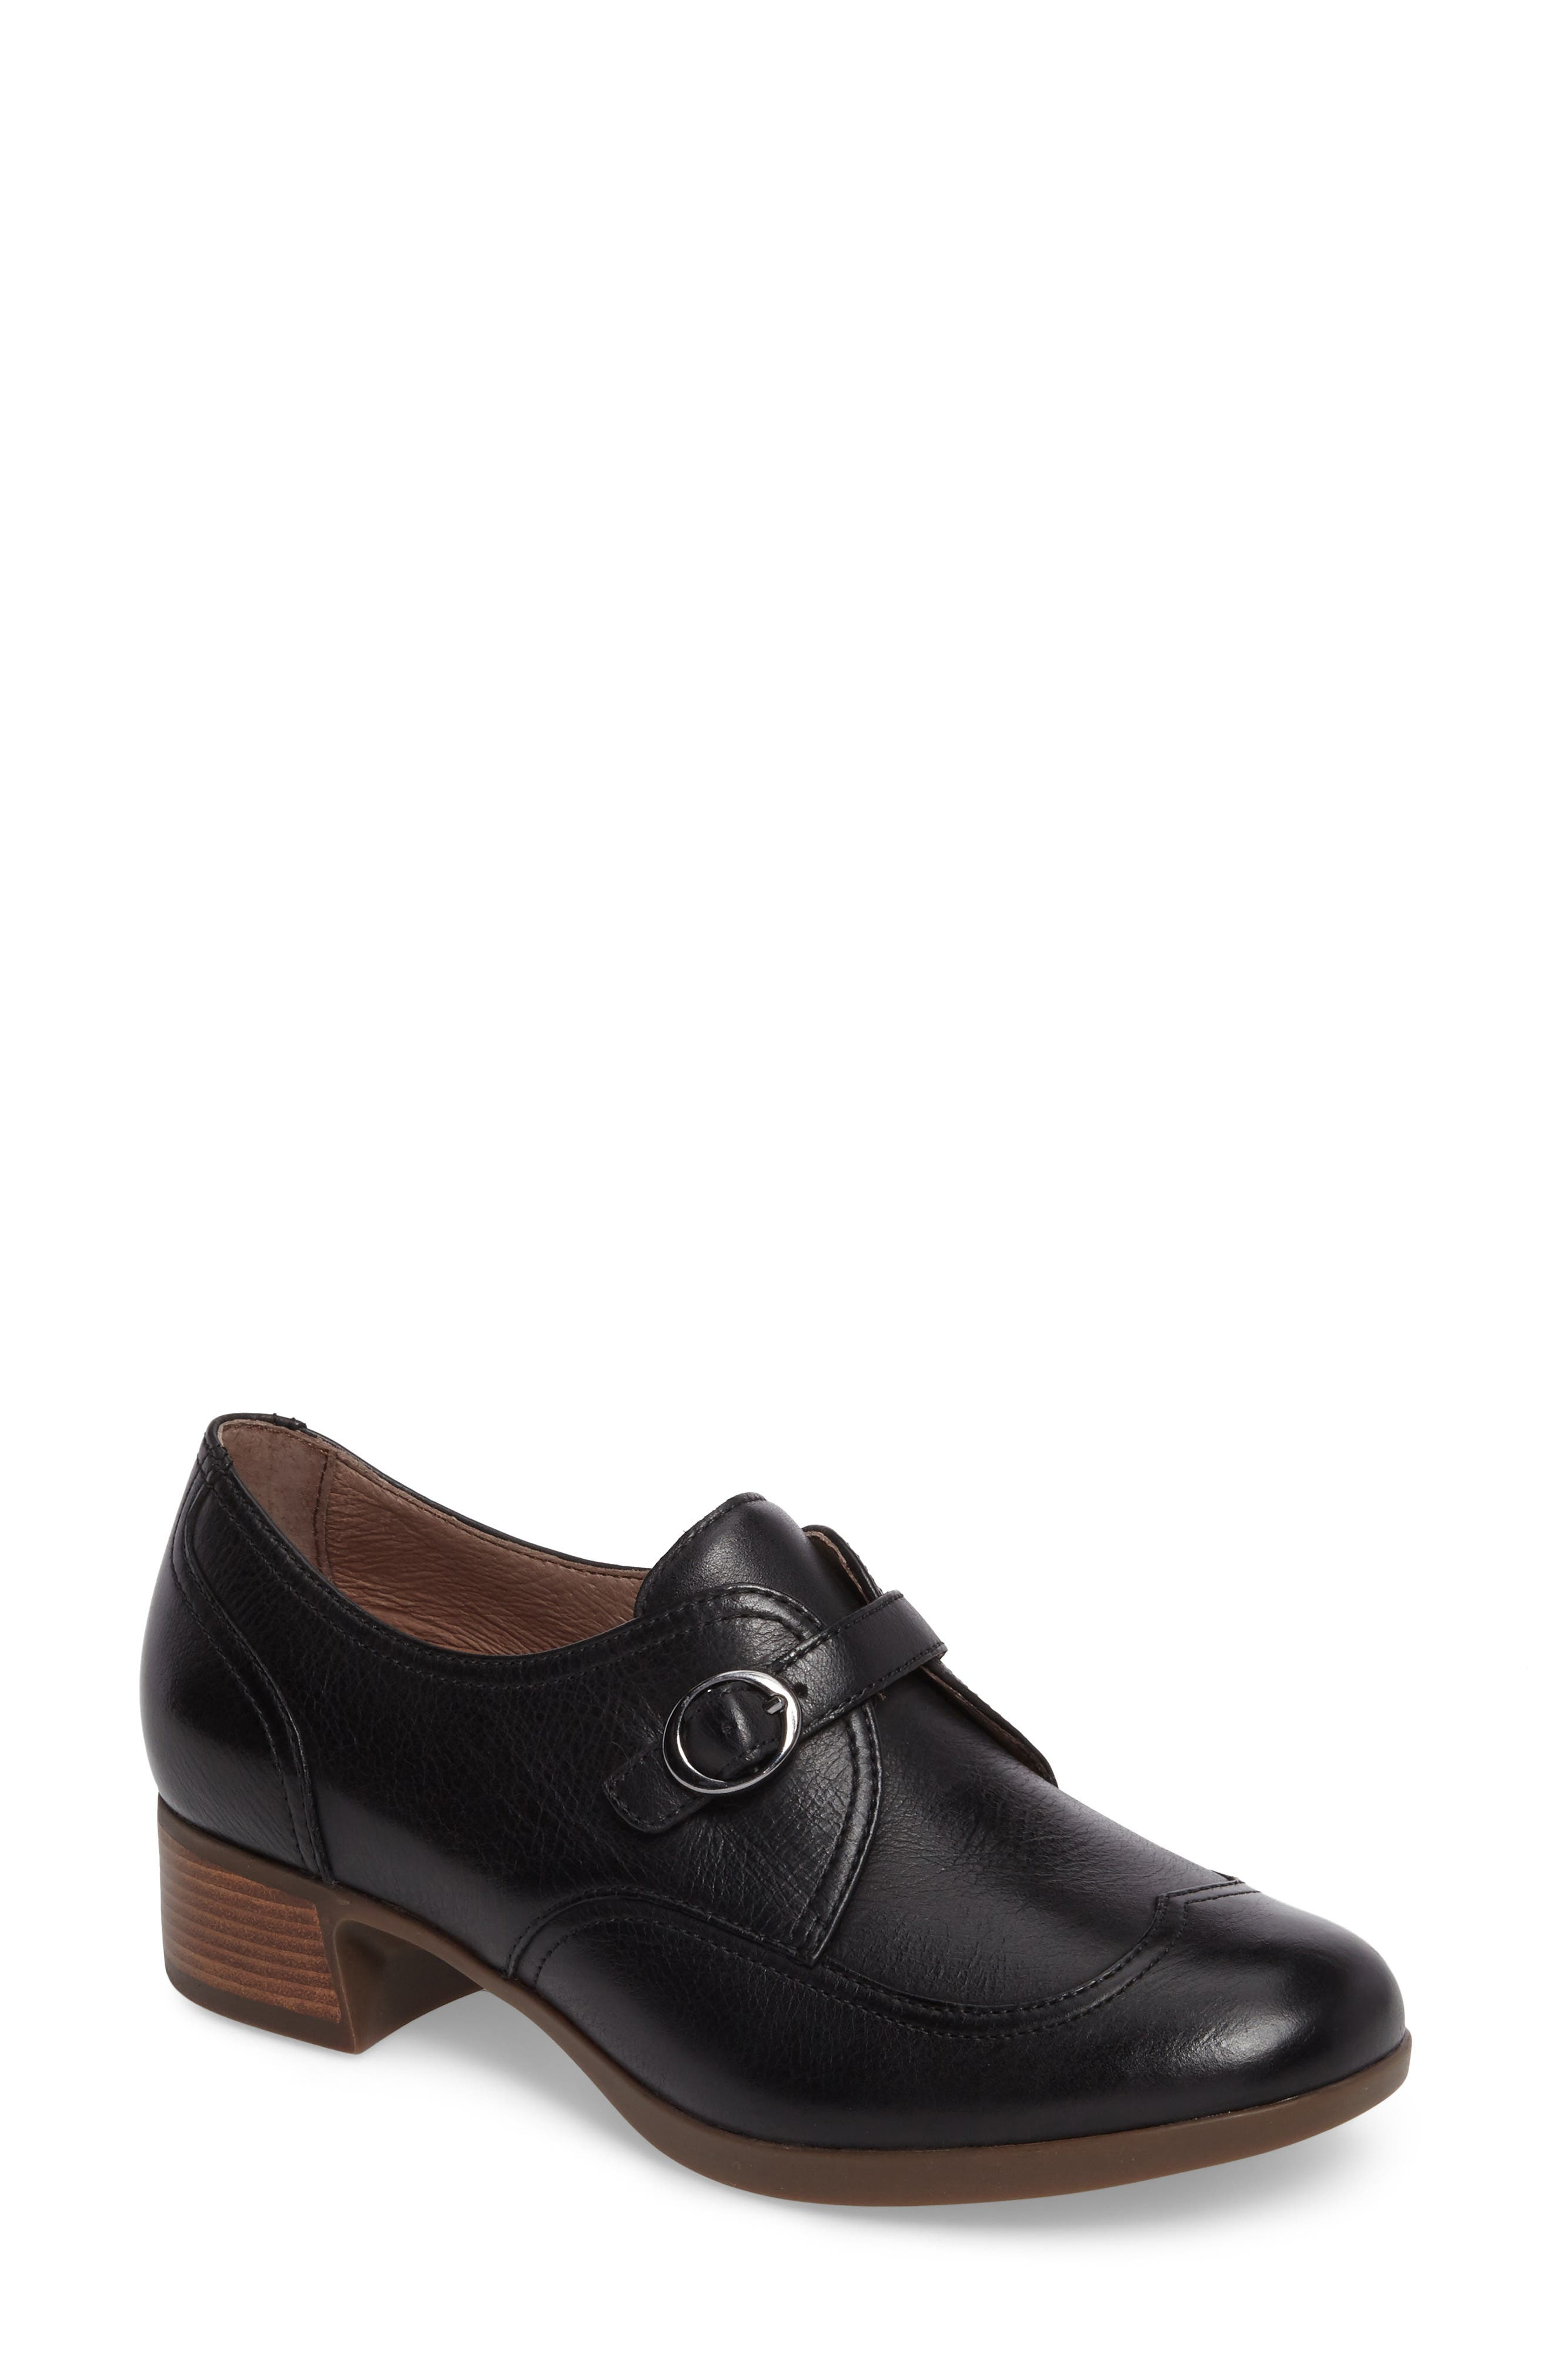 Alternate Image 1 Selected - Dansko Livie Wingtip Oxford (Women)